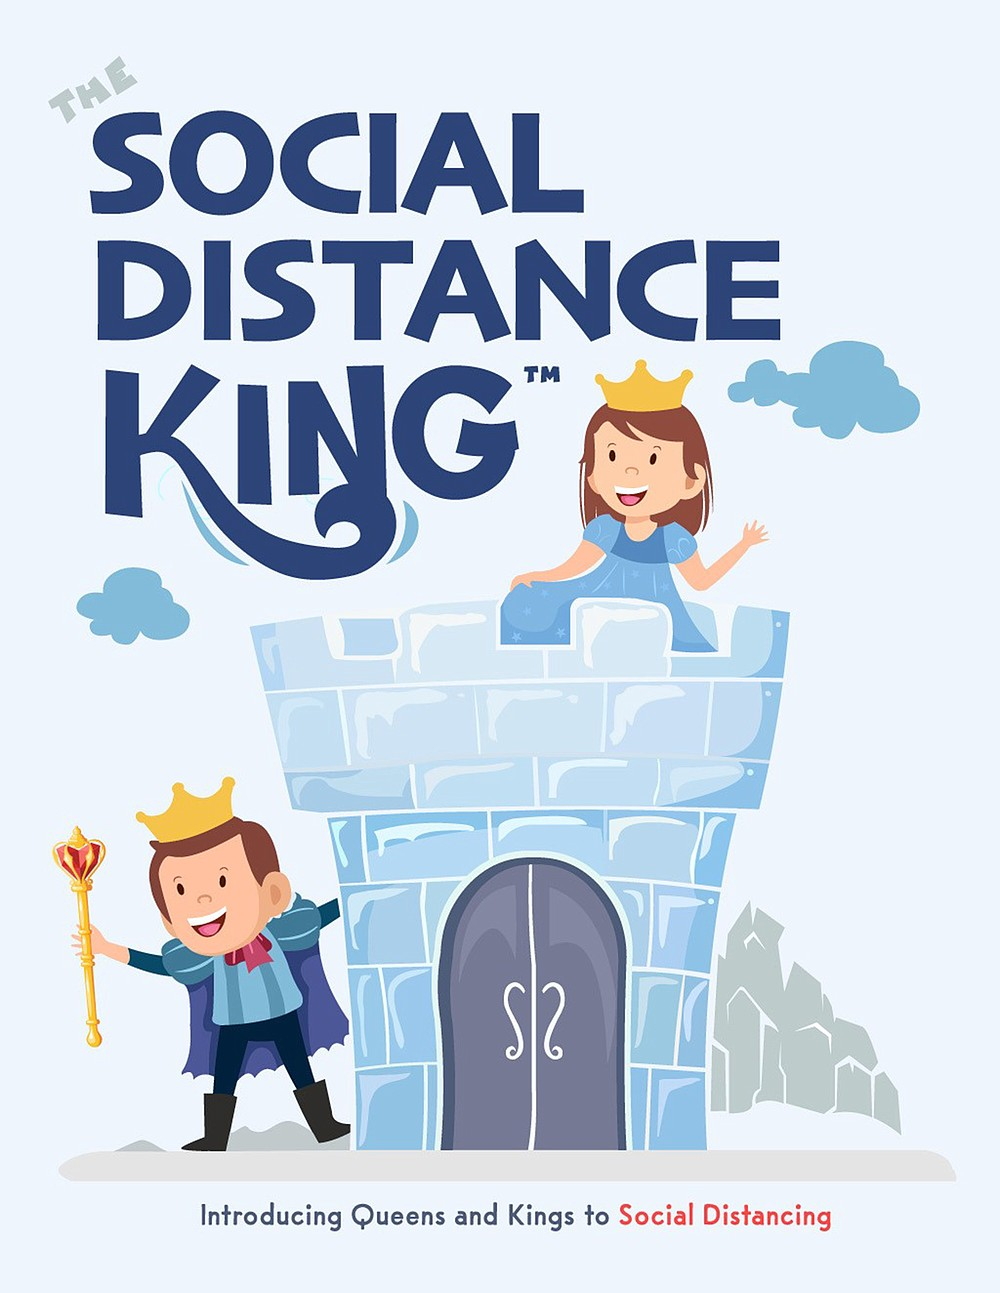 """The Social Distance King"" by Eric DeSio (Eric DeSio)"